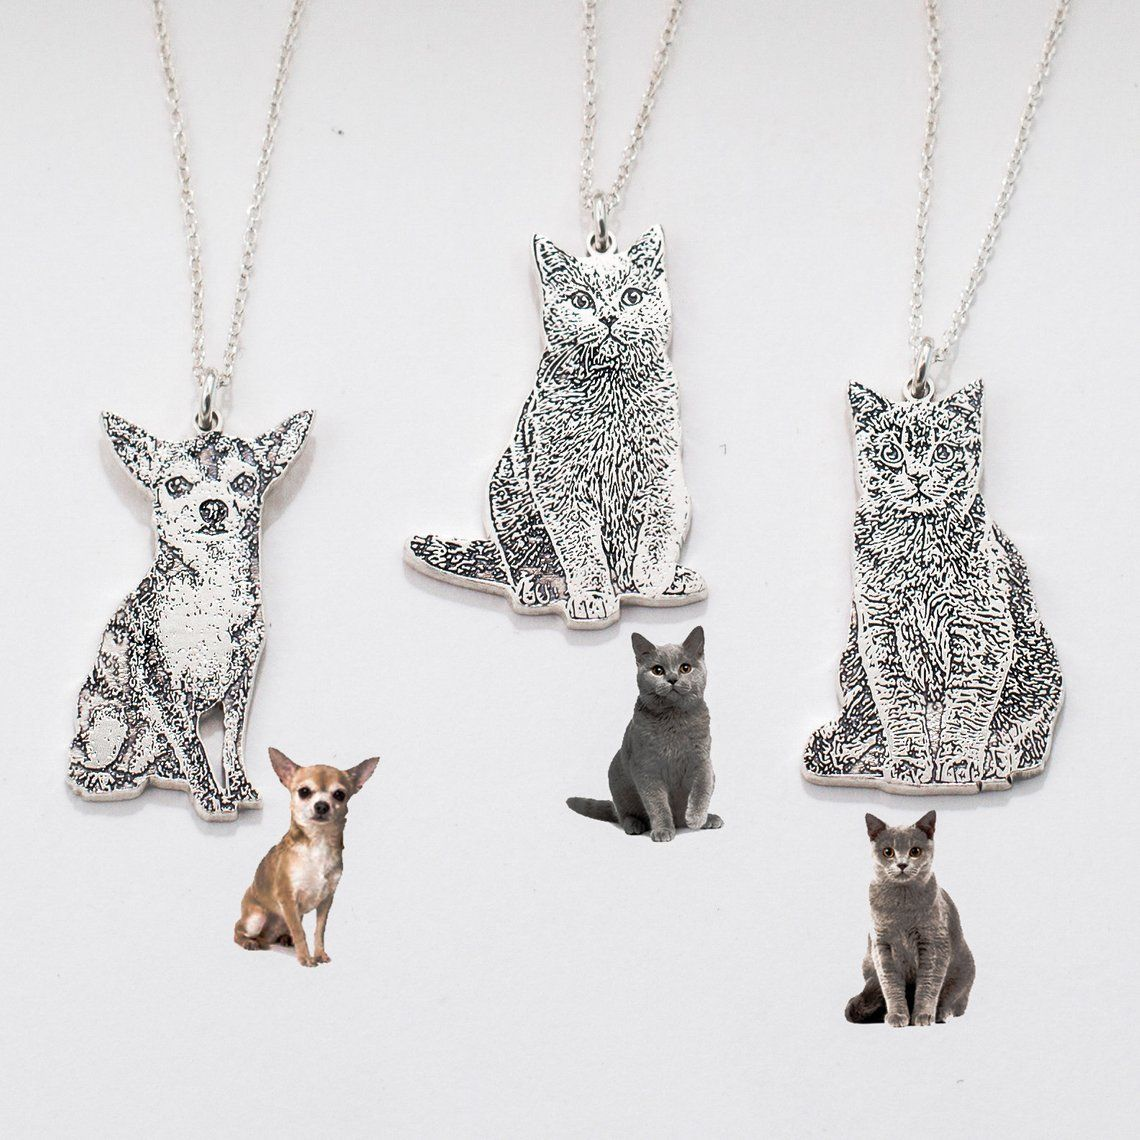 pet name necklace personalized gift Sterling silver cat necklace personalized name necklace pet gifts kitty necklace custom jewelry